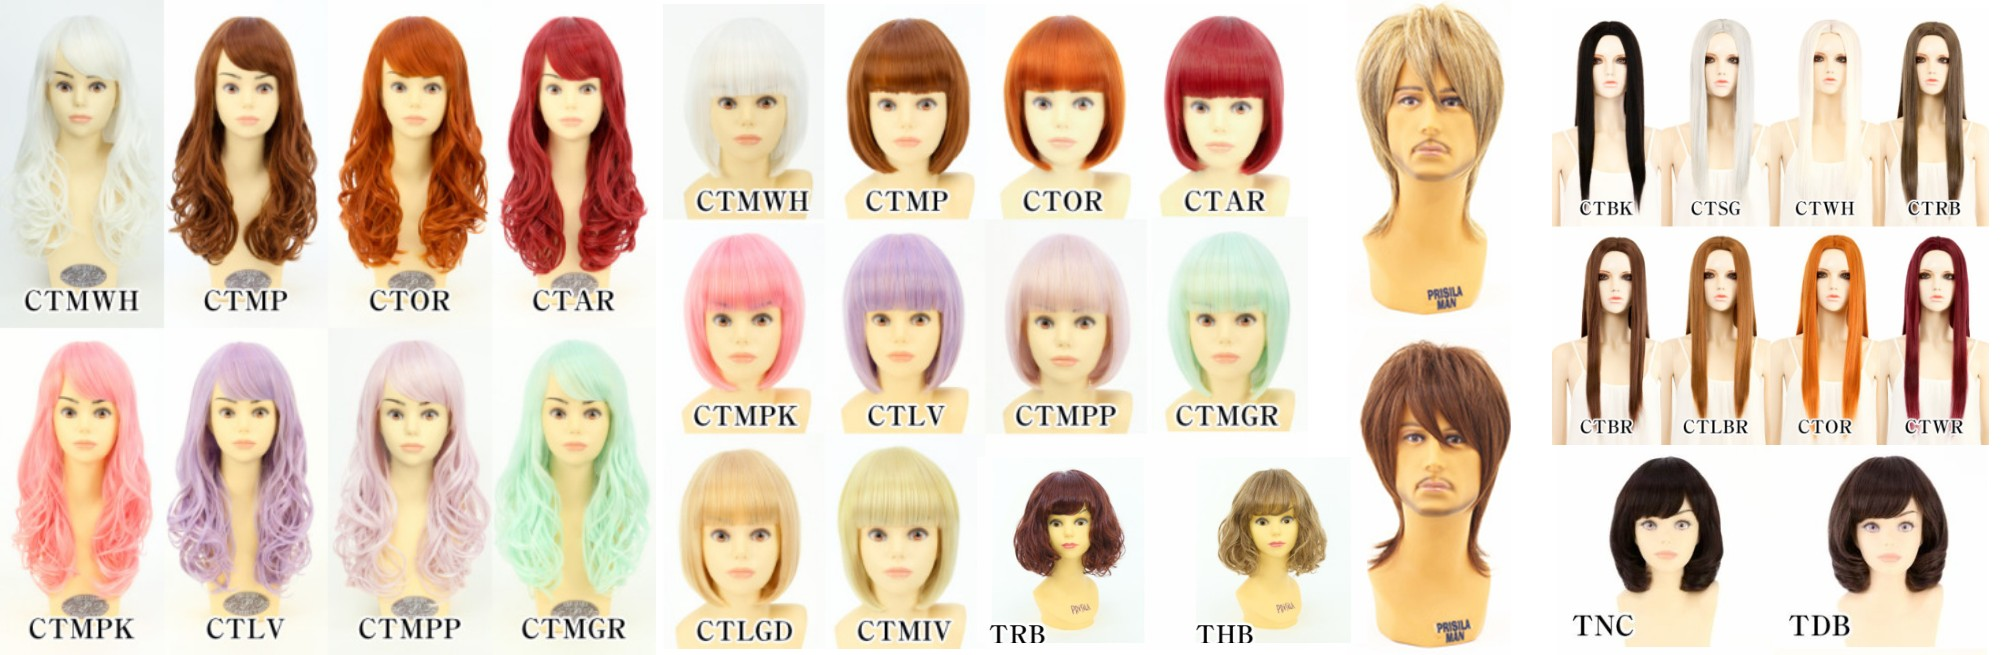 Japanese Cosplay Wig Brands: Prisila